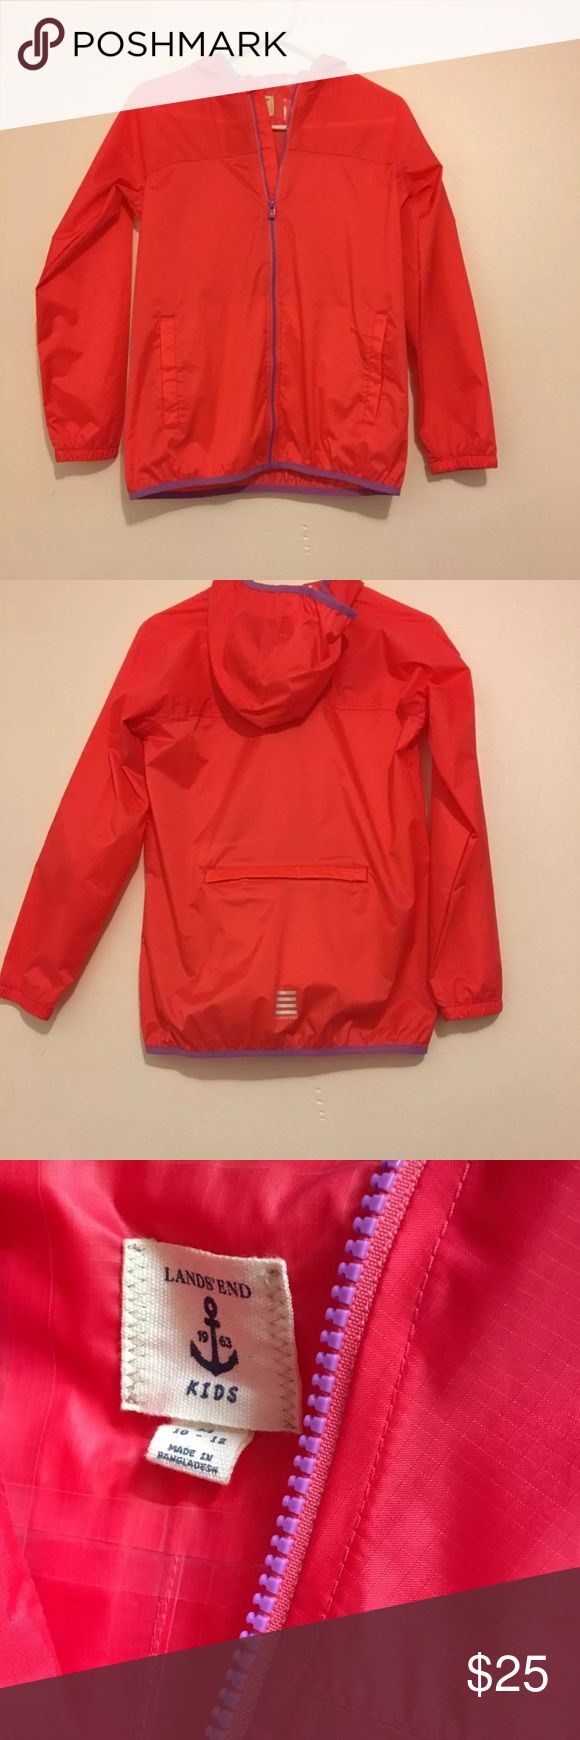 Lands end rain jacket Lands end zip up jacket Salmon w/ purple Great for rainy days Lightweight  Hoodie Size kids M (10-12) may also fit women's S/XS NWOT Lands' End Jackets & Coats Raincoats